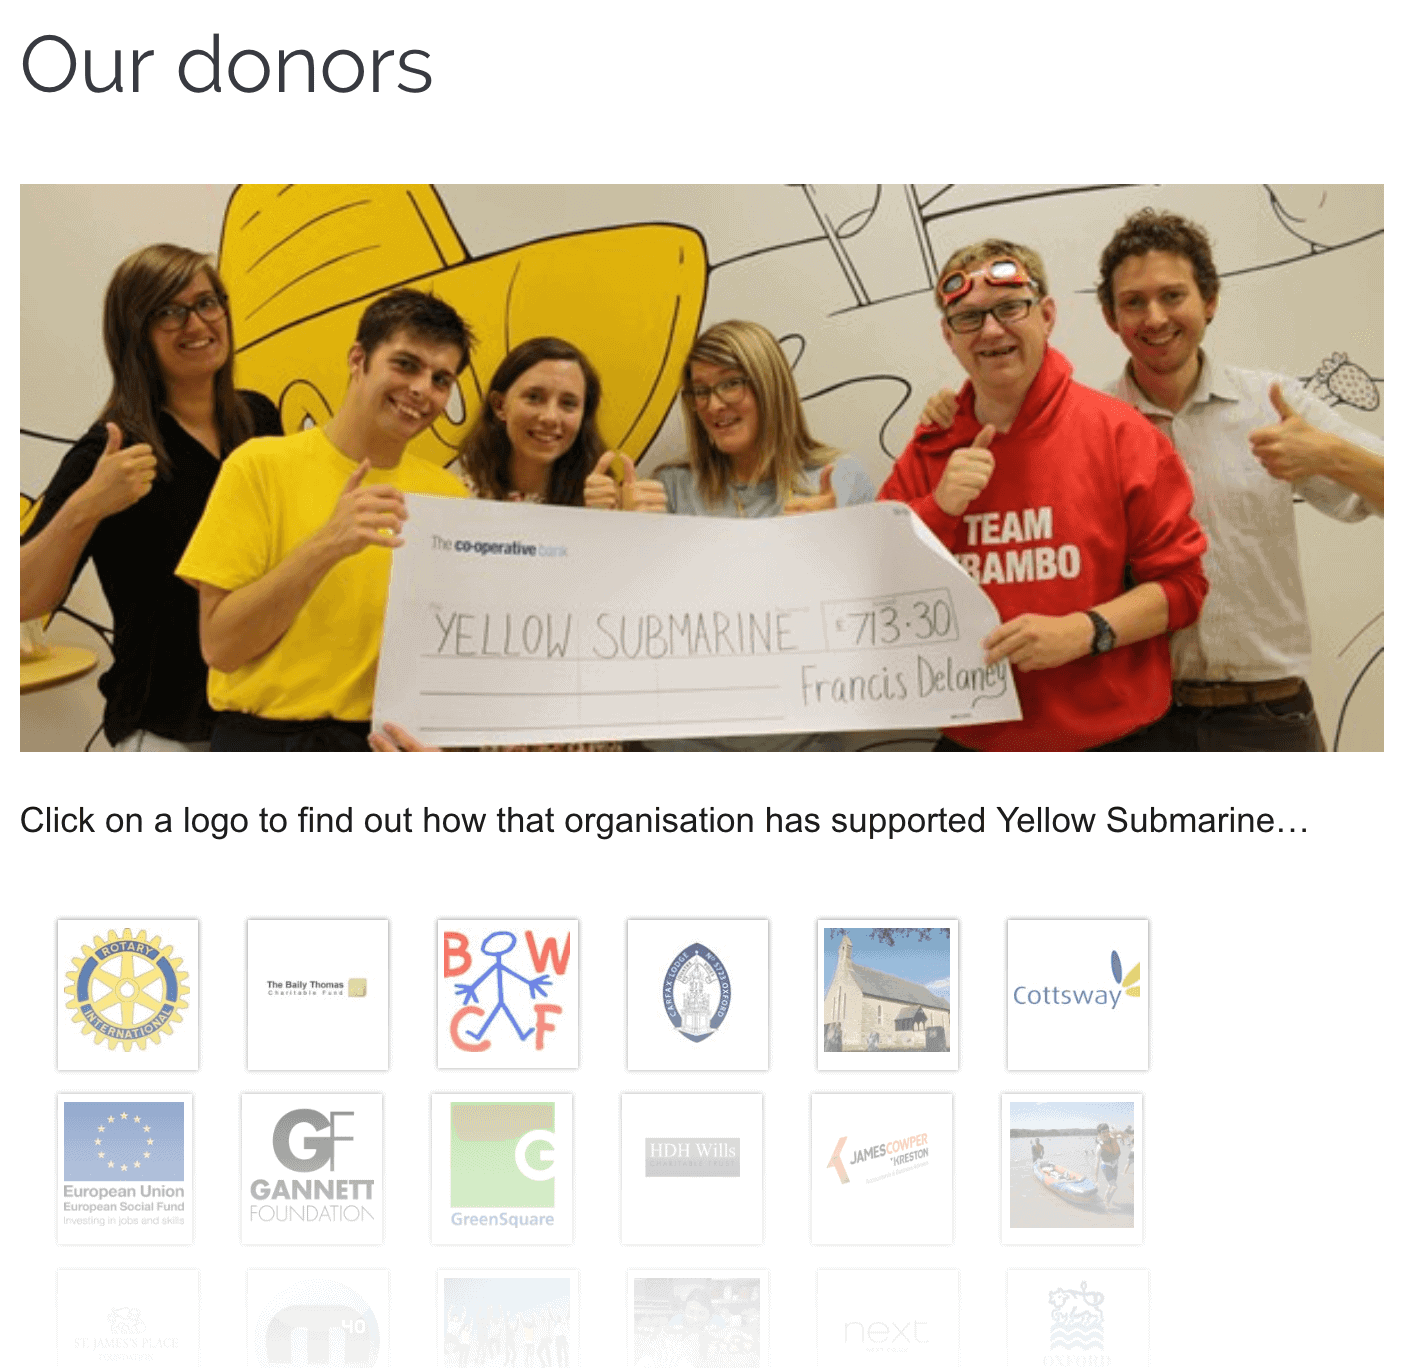 Donate to charities and non-profits